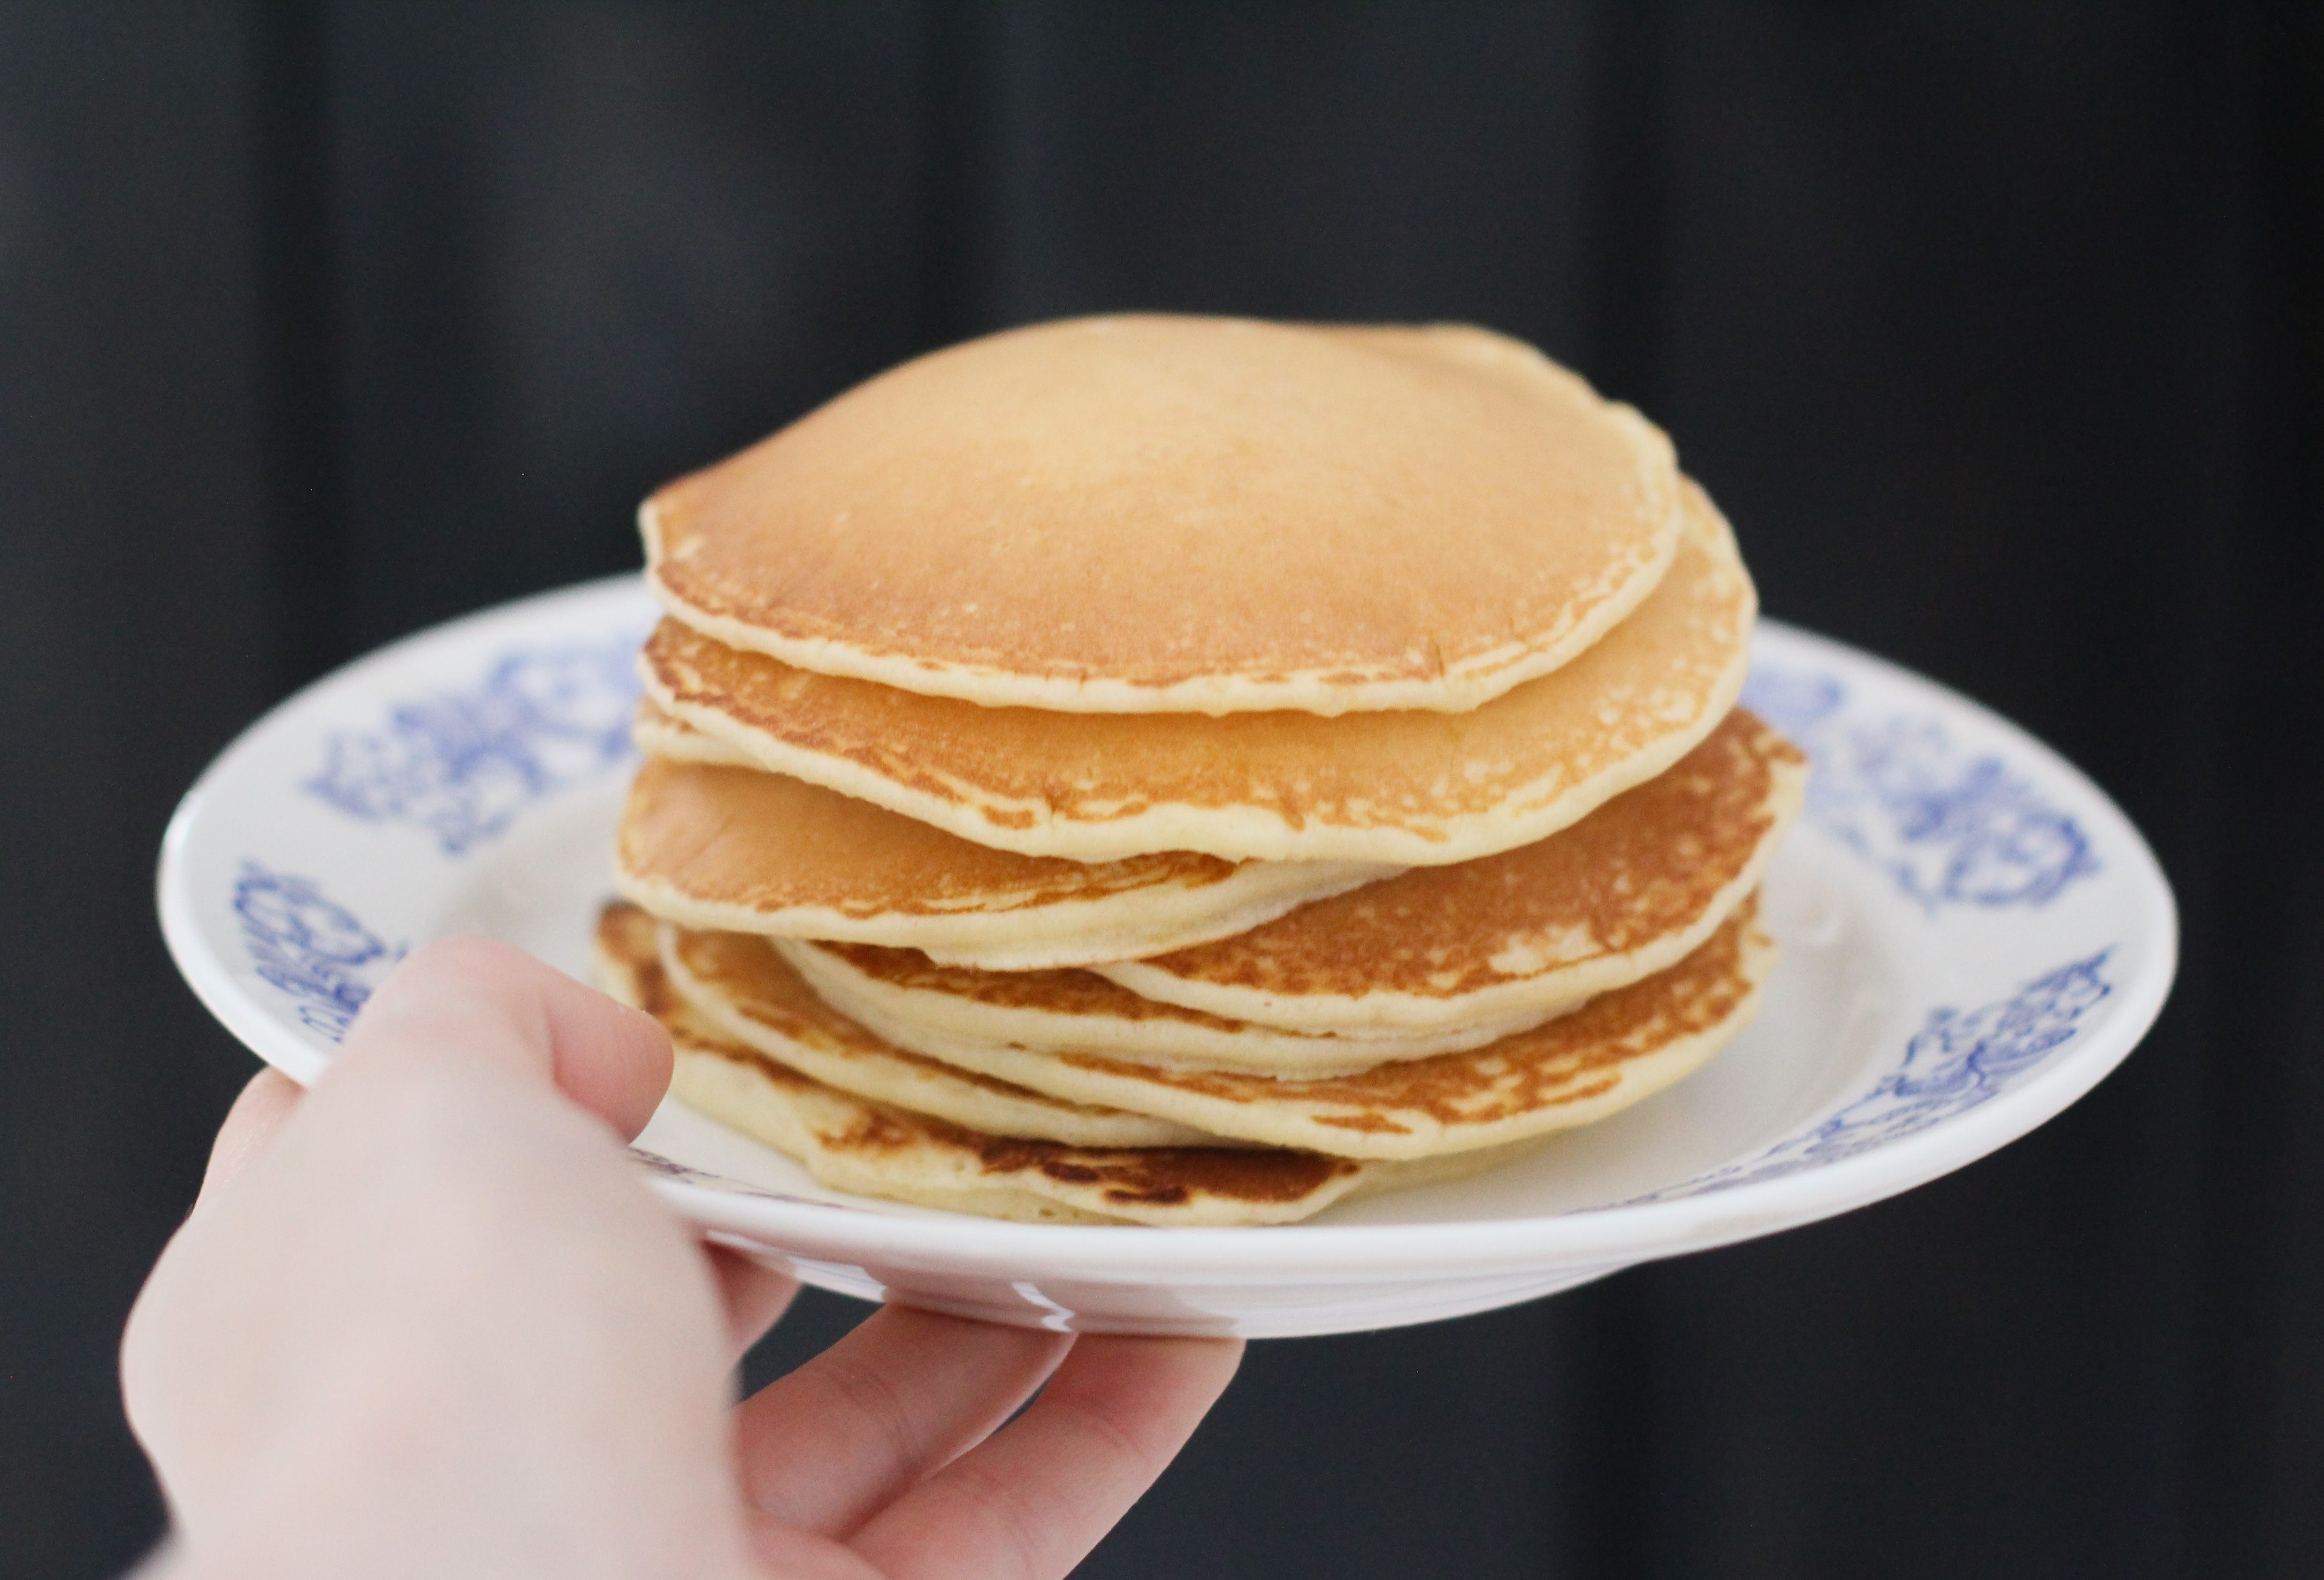 Person Holding Plate With Pancakes